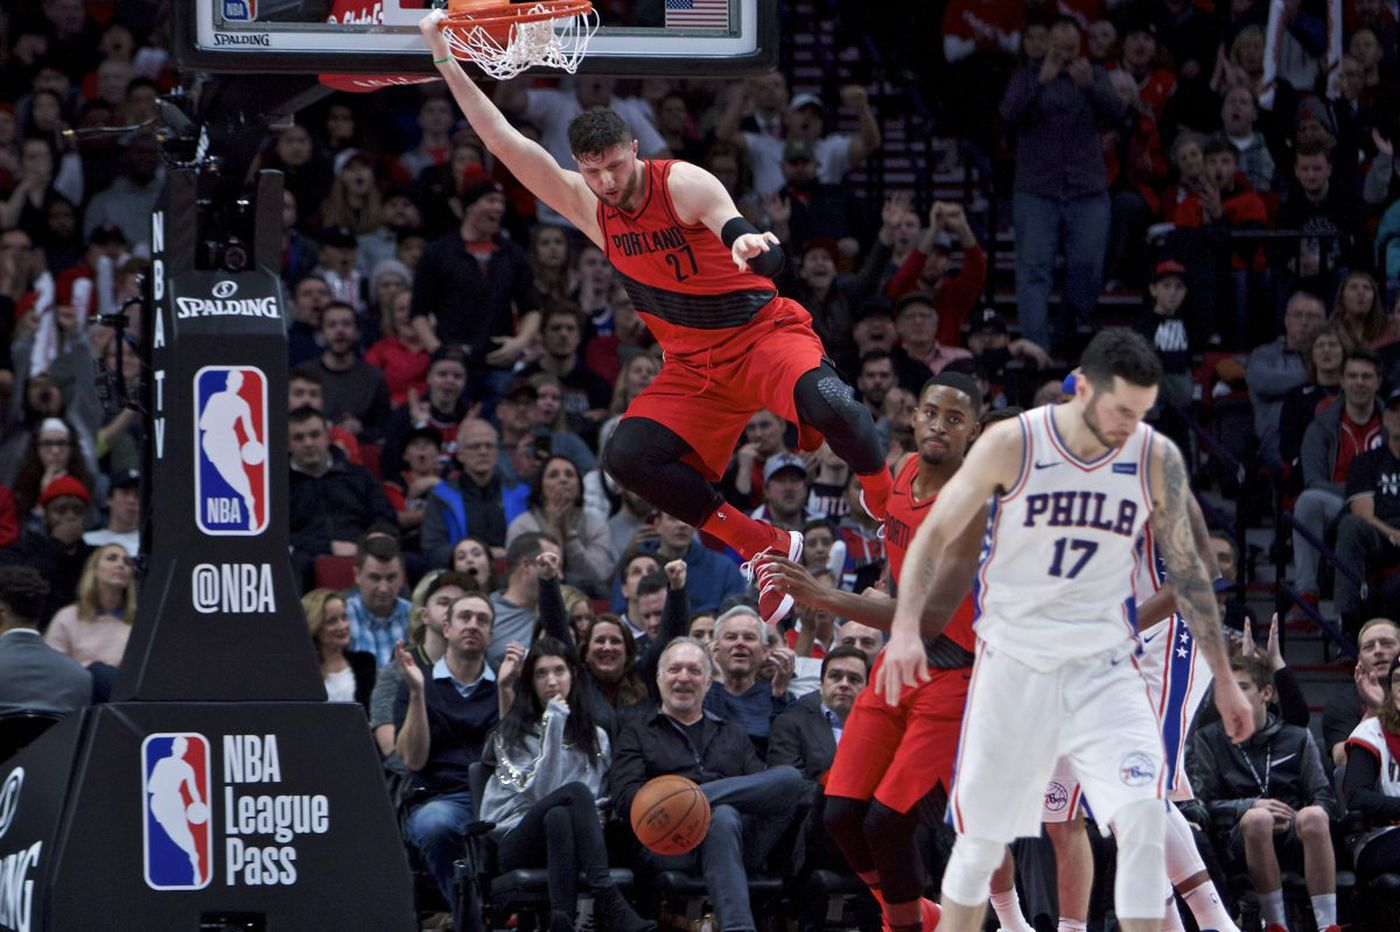 Sixers blow 18-point lead and lose to Blazers, 114-110